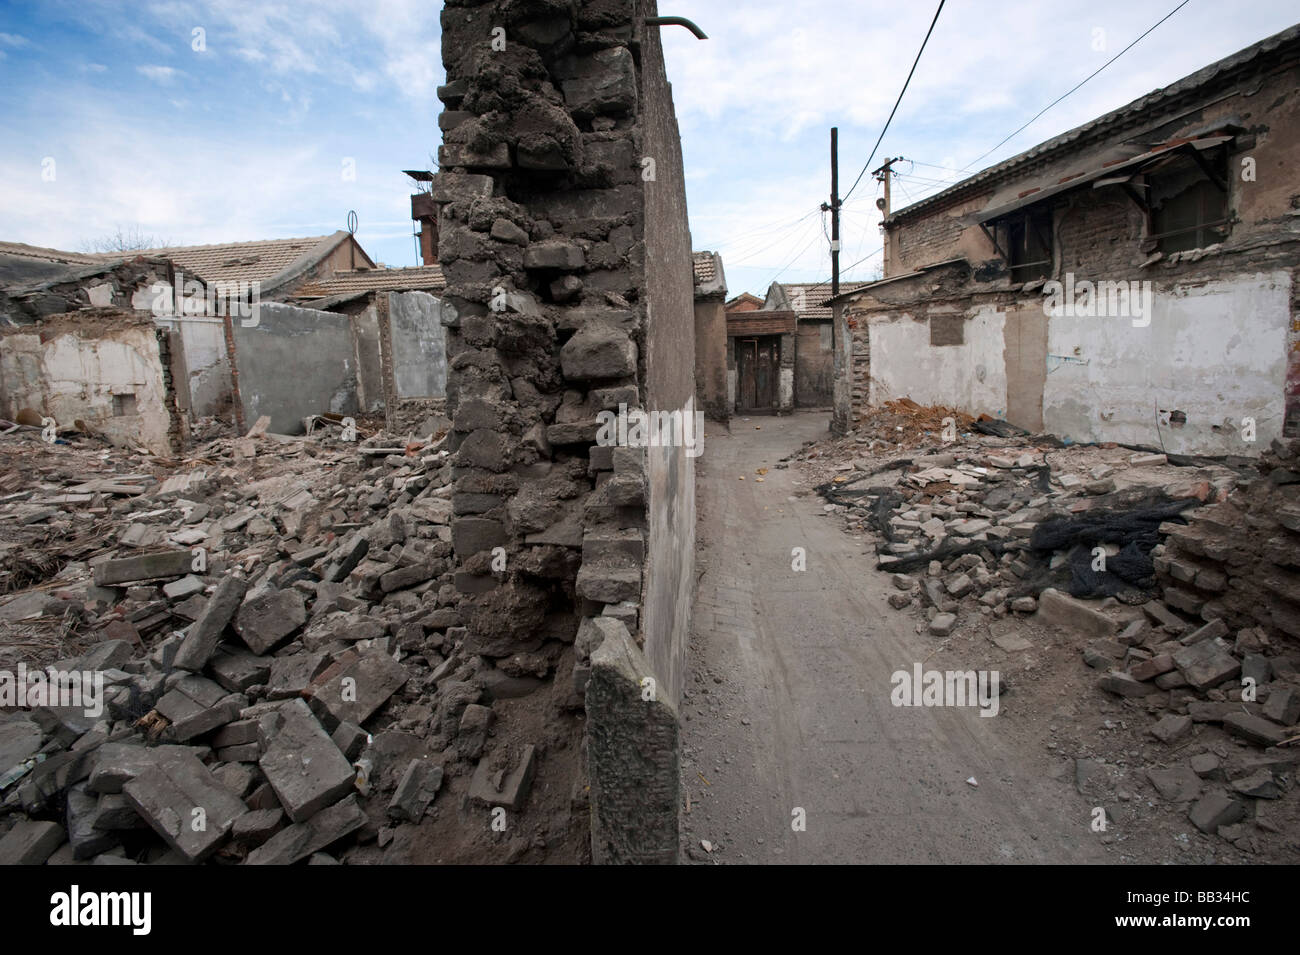 Demolition in progress of historic houses in an area of traditional hutong streets for redevelopment in Beijing - Stock Image